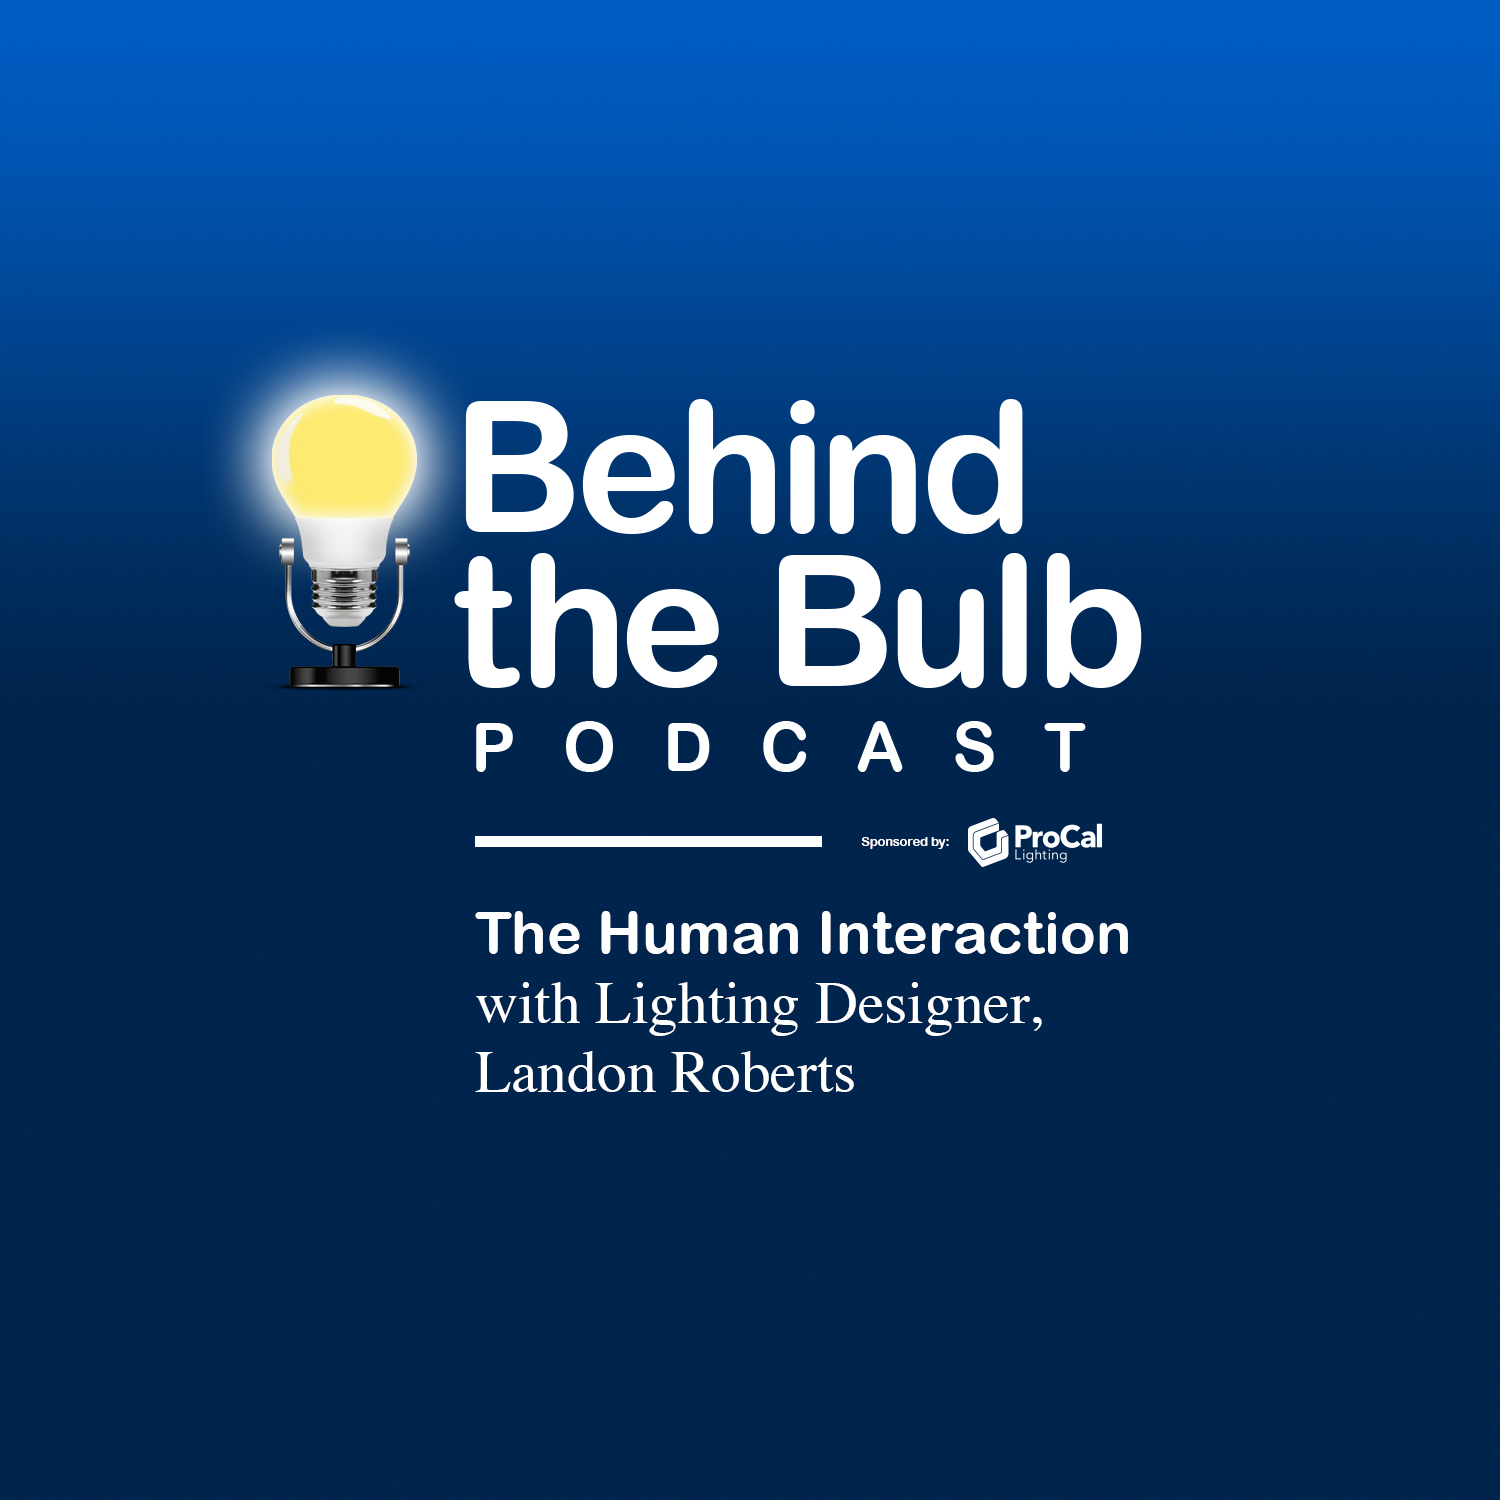 behind the bulb podcast